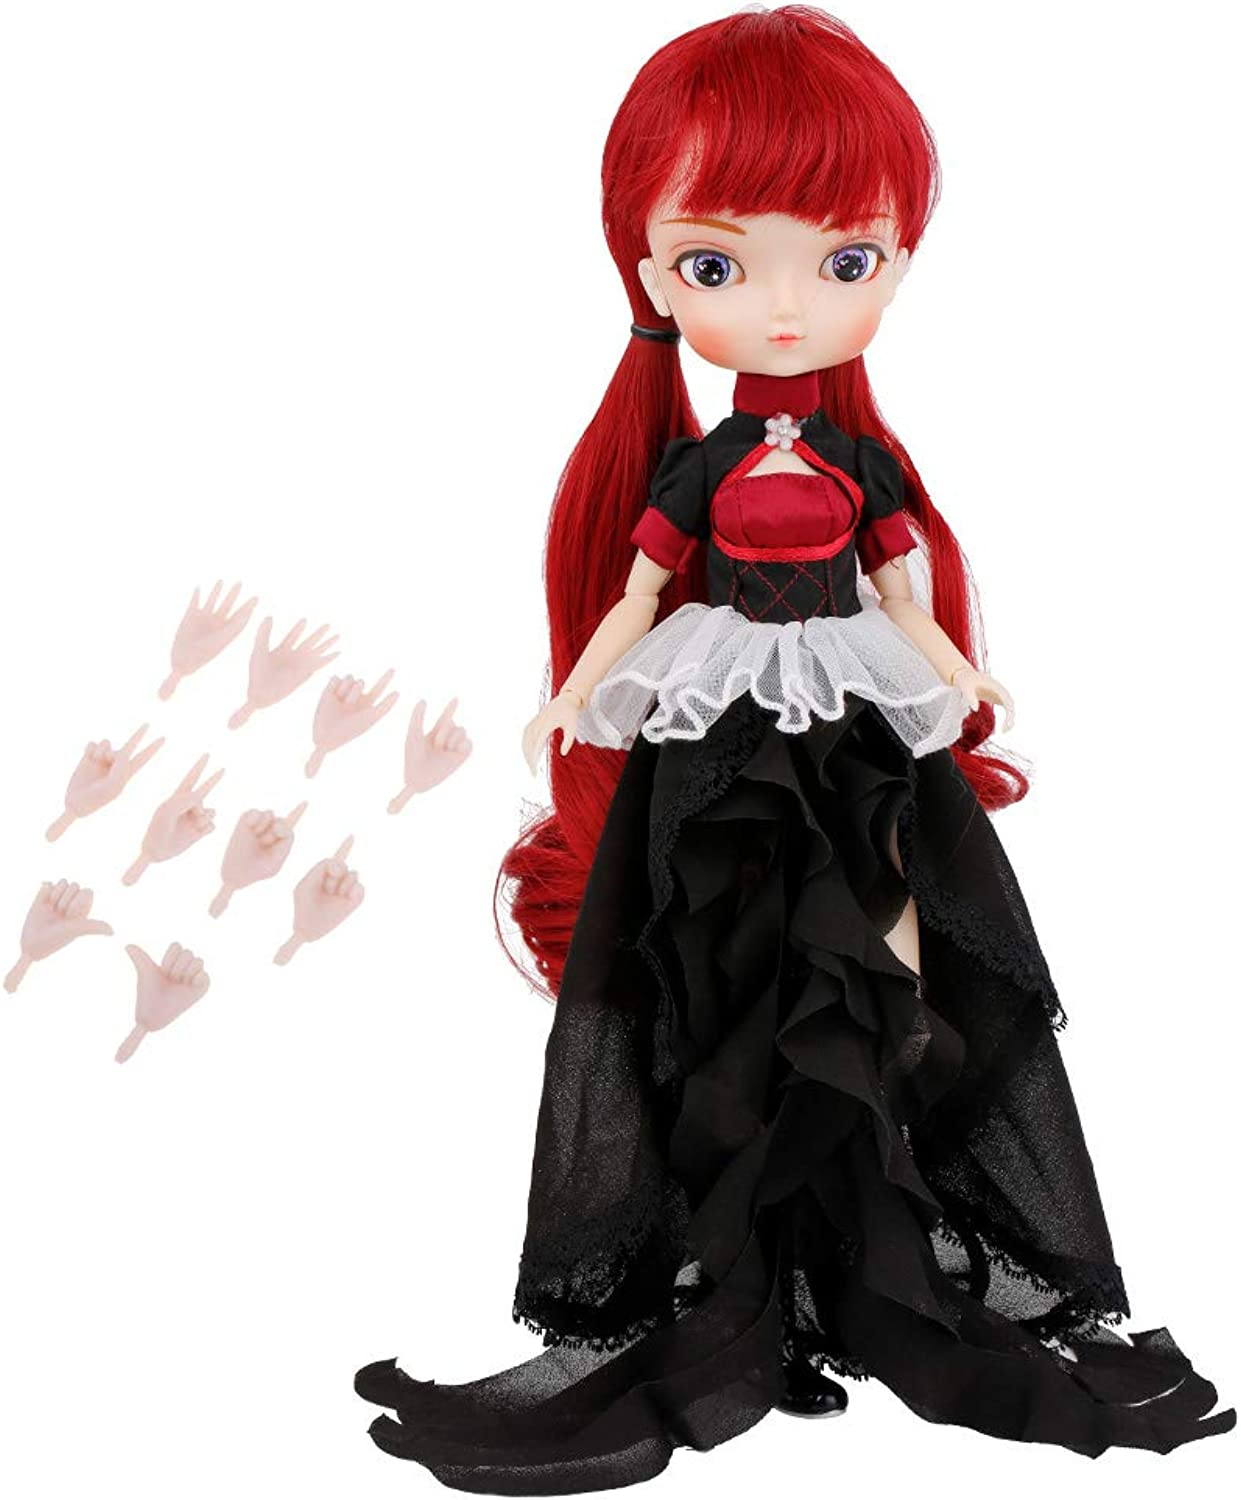 SM SunniMix Detachable 14Joints Make Up BJD SD Girl Doll 1 6 Ball Jointed Doll Collections Play Set Xmas New Year Birthday Gift Box